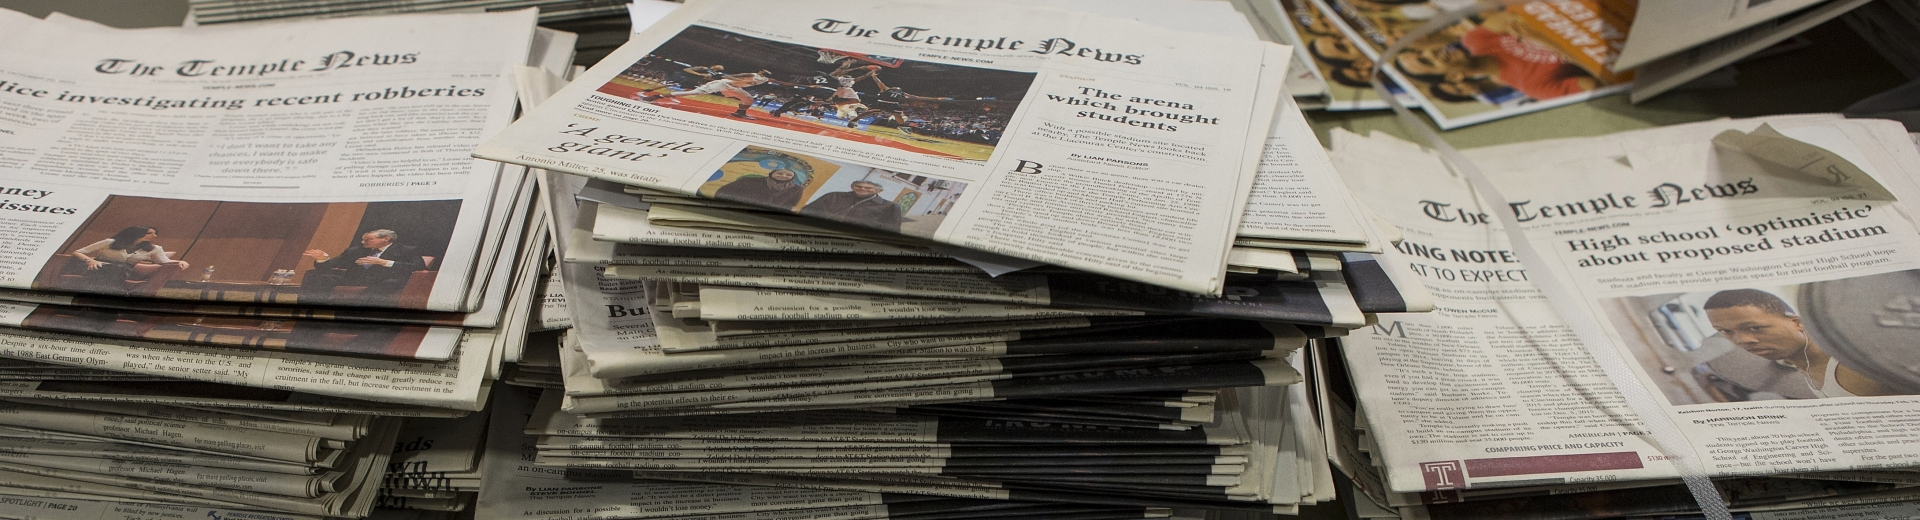 Stack of Temple News newspapers